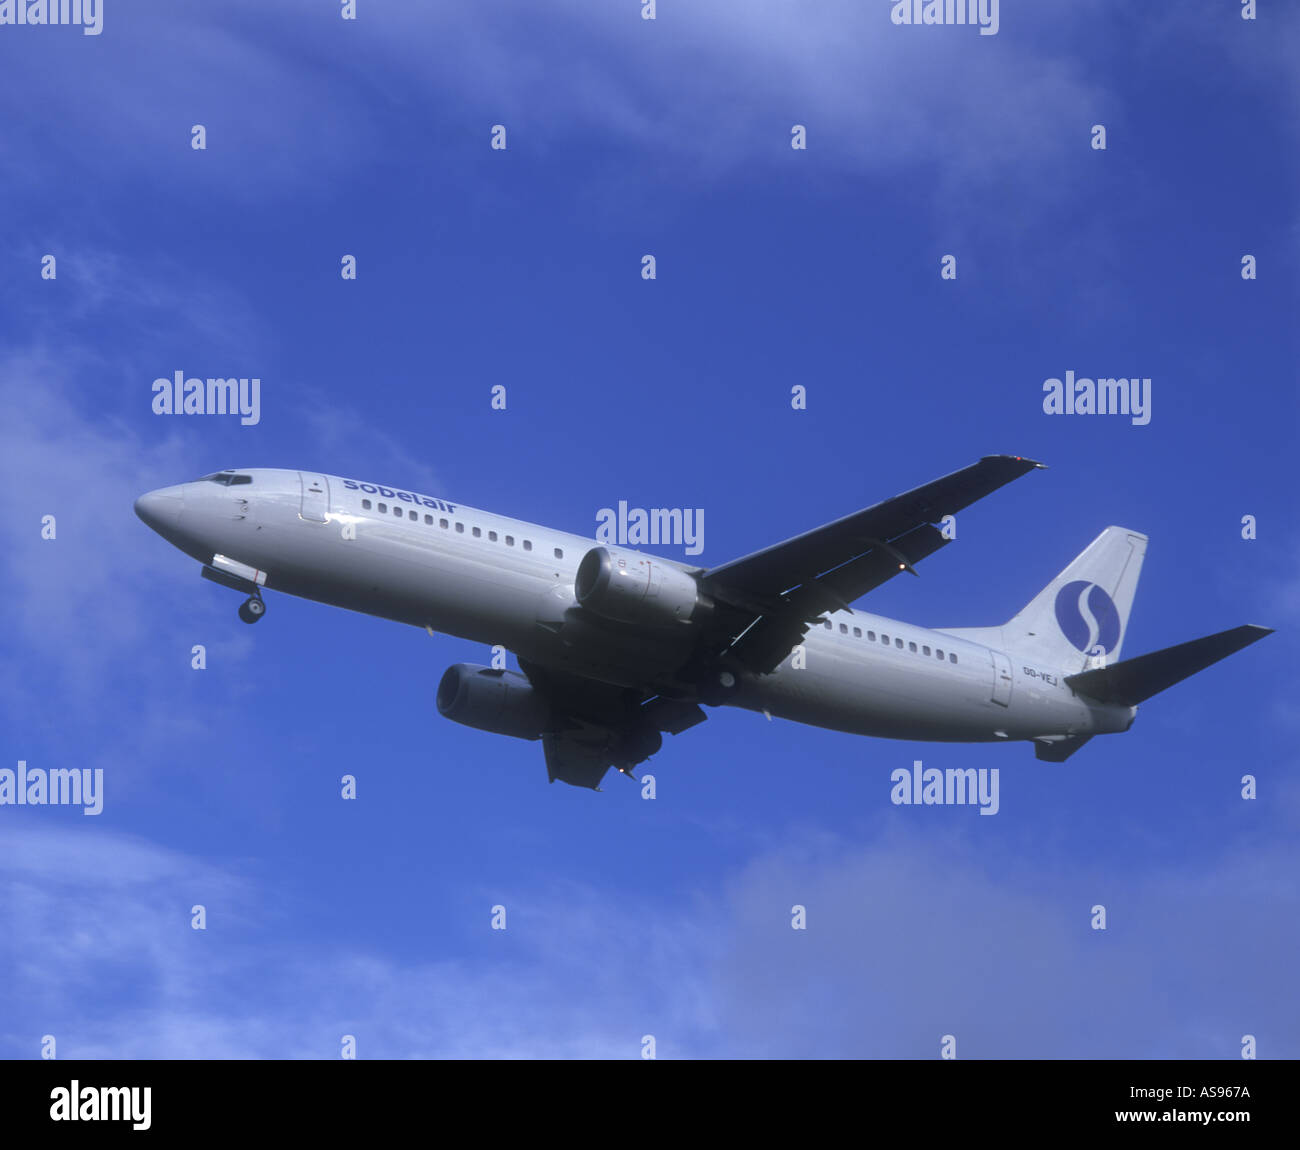 Boeing 737 airliner Sabena airlines out of business Edinburgh Scotland Stock Photo